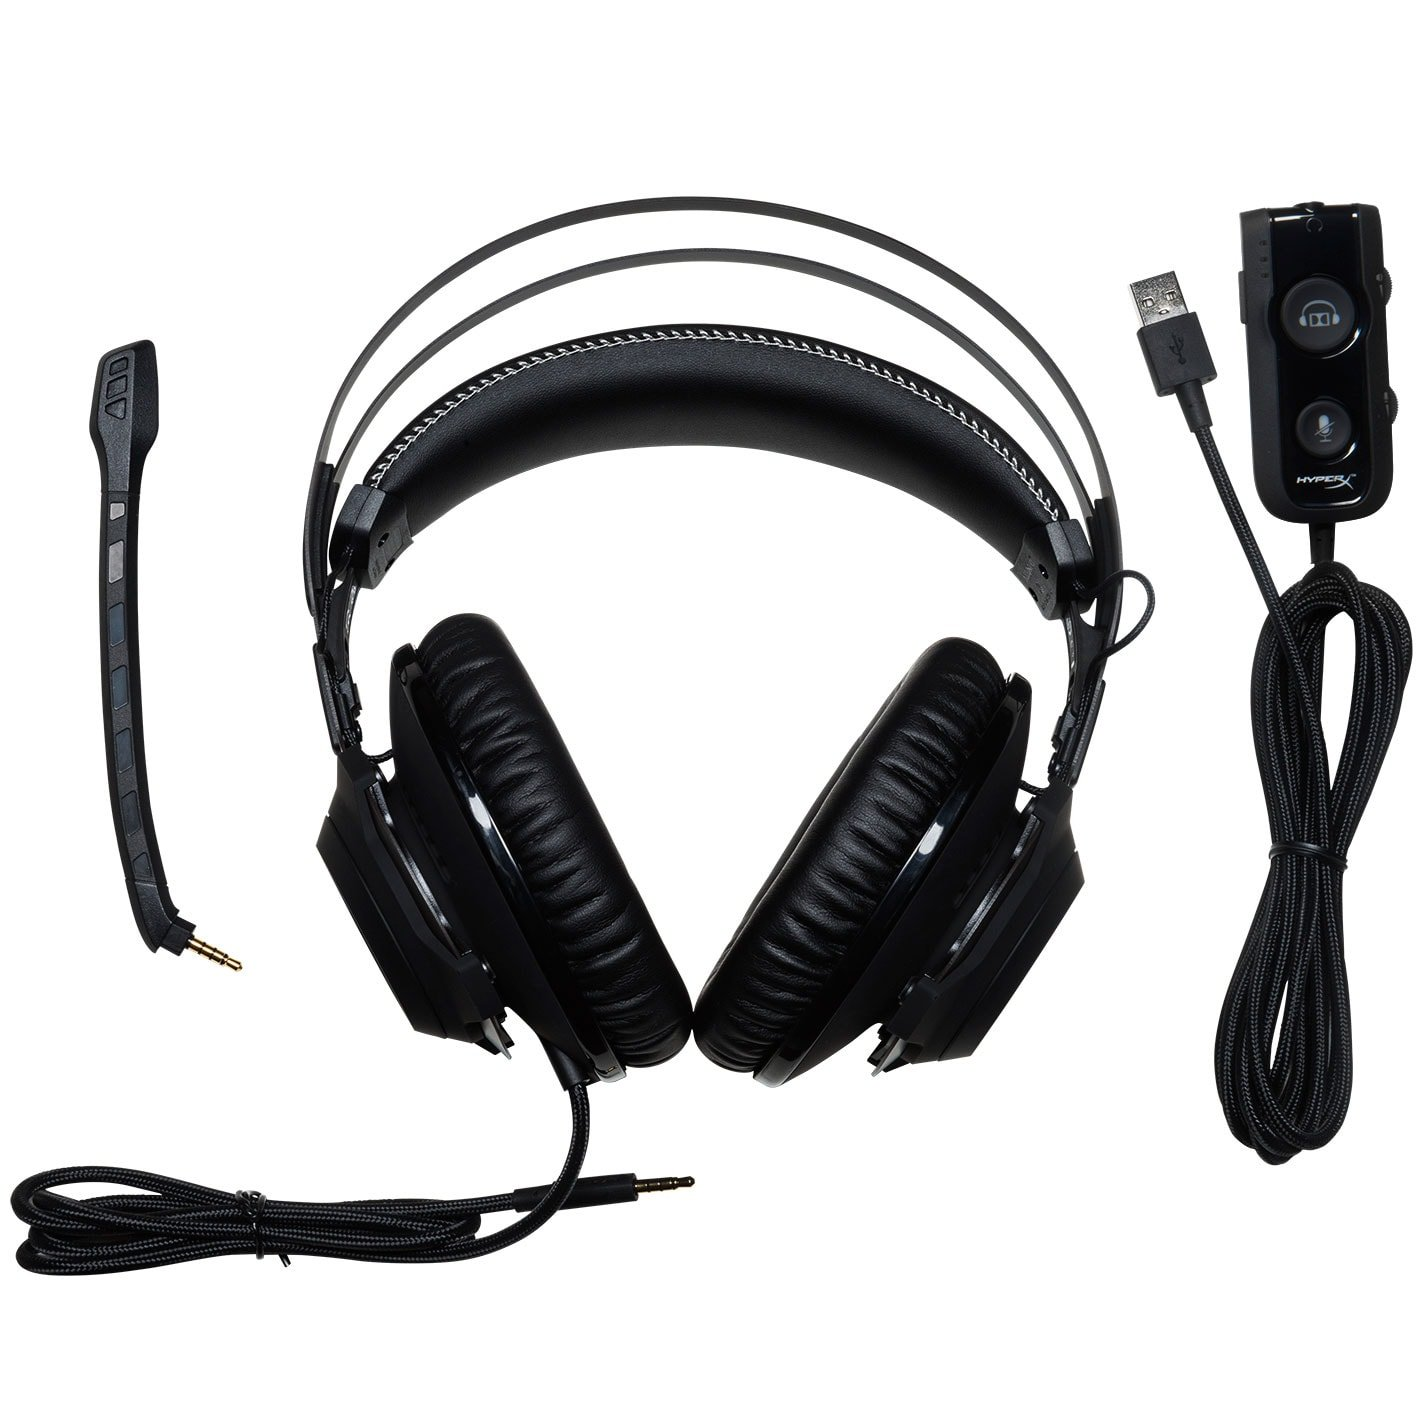 HyperX Cloud Revolver S Gaming Headset (Gun Metal) 7.1 Surround - Micro-casque - 1